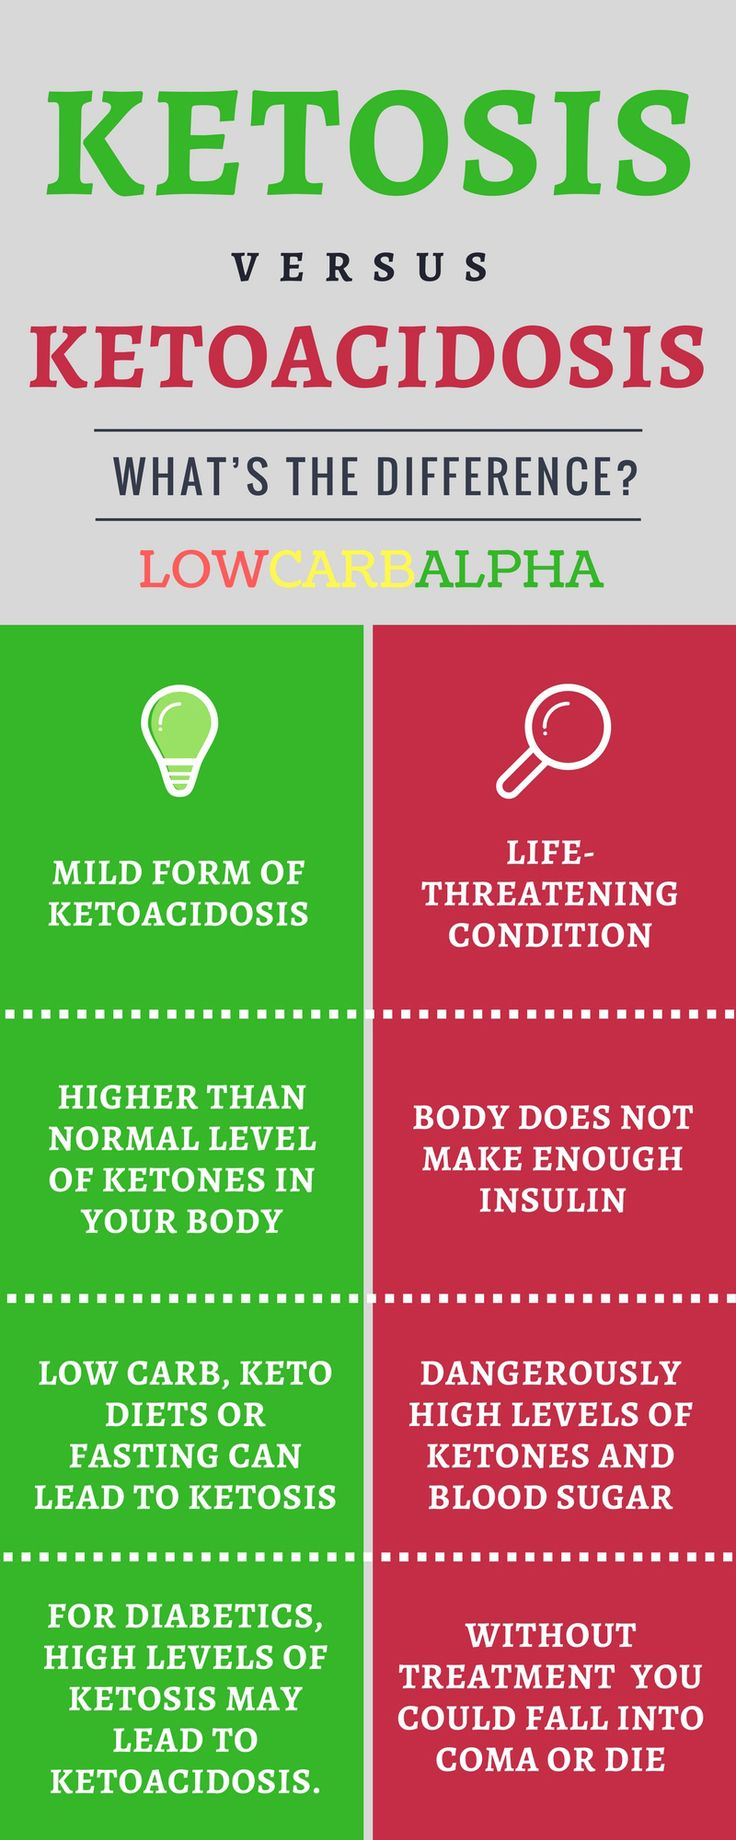 Ketoacidosis vs Ketosis https://lowcarbalpha.com/ketoacidosis-vs-ketosis/ What's the Difference? Learn about a ketogenic diet, burning stored fat with ketones plus the symptoms and causes of ketoacidosis #lowcarb #keto #LCHF #lowcarbalpha #ketosis